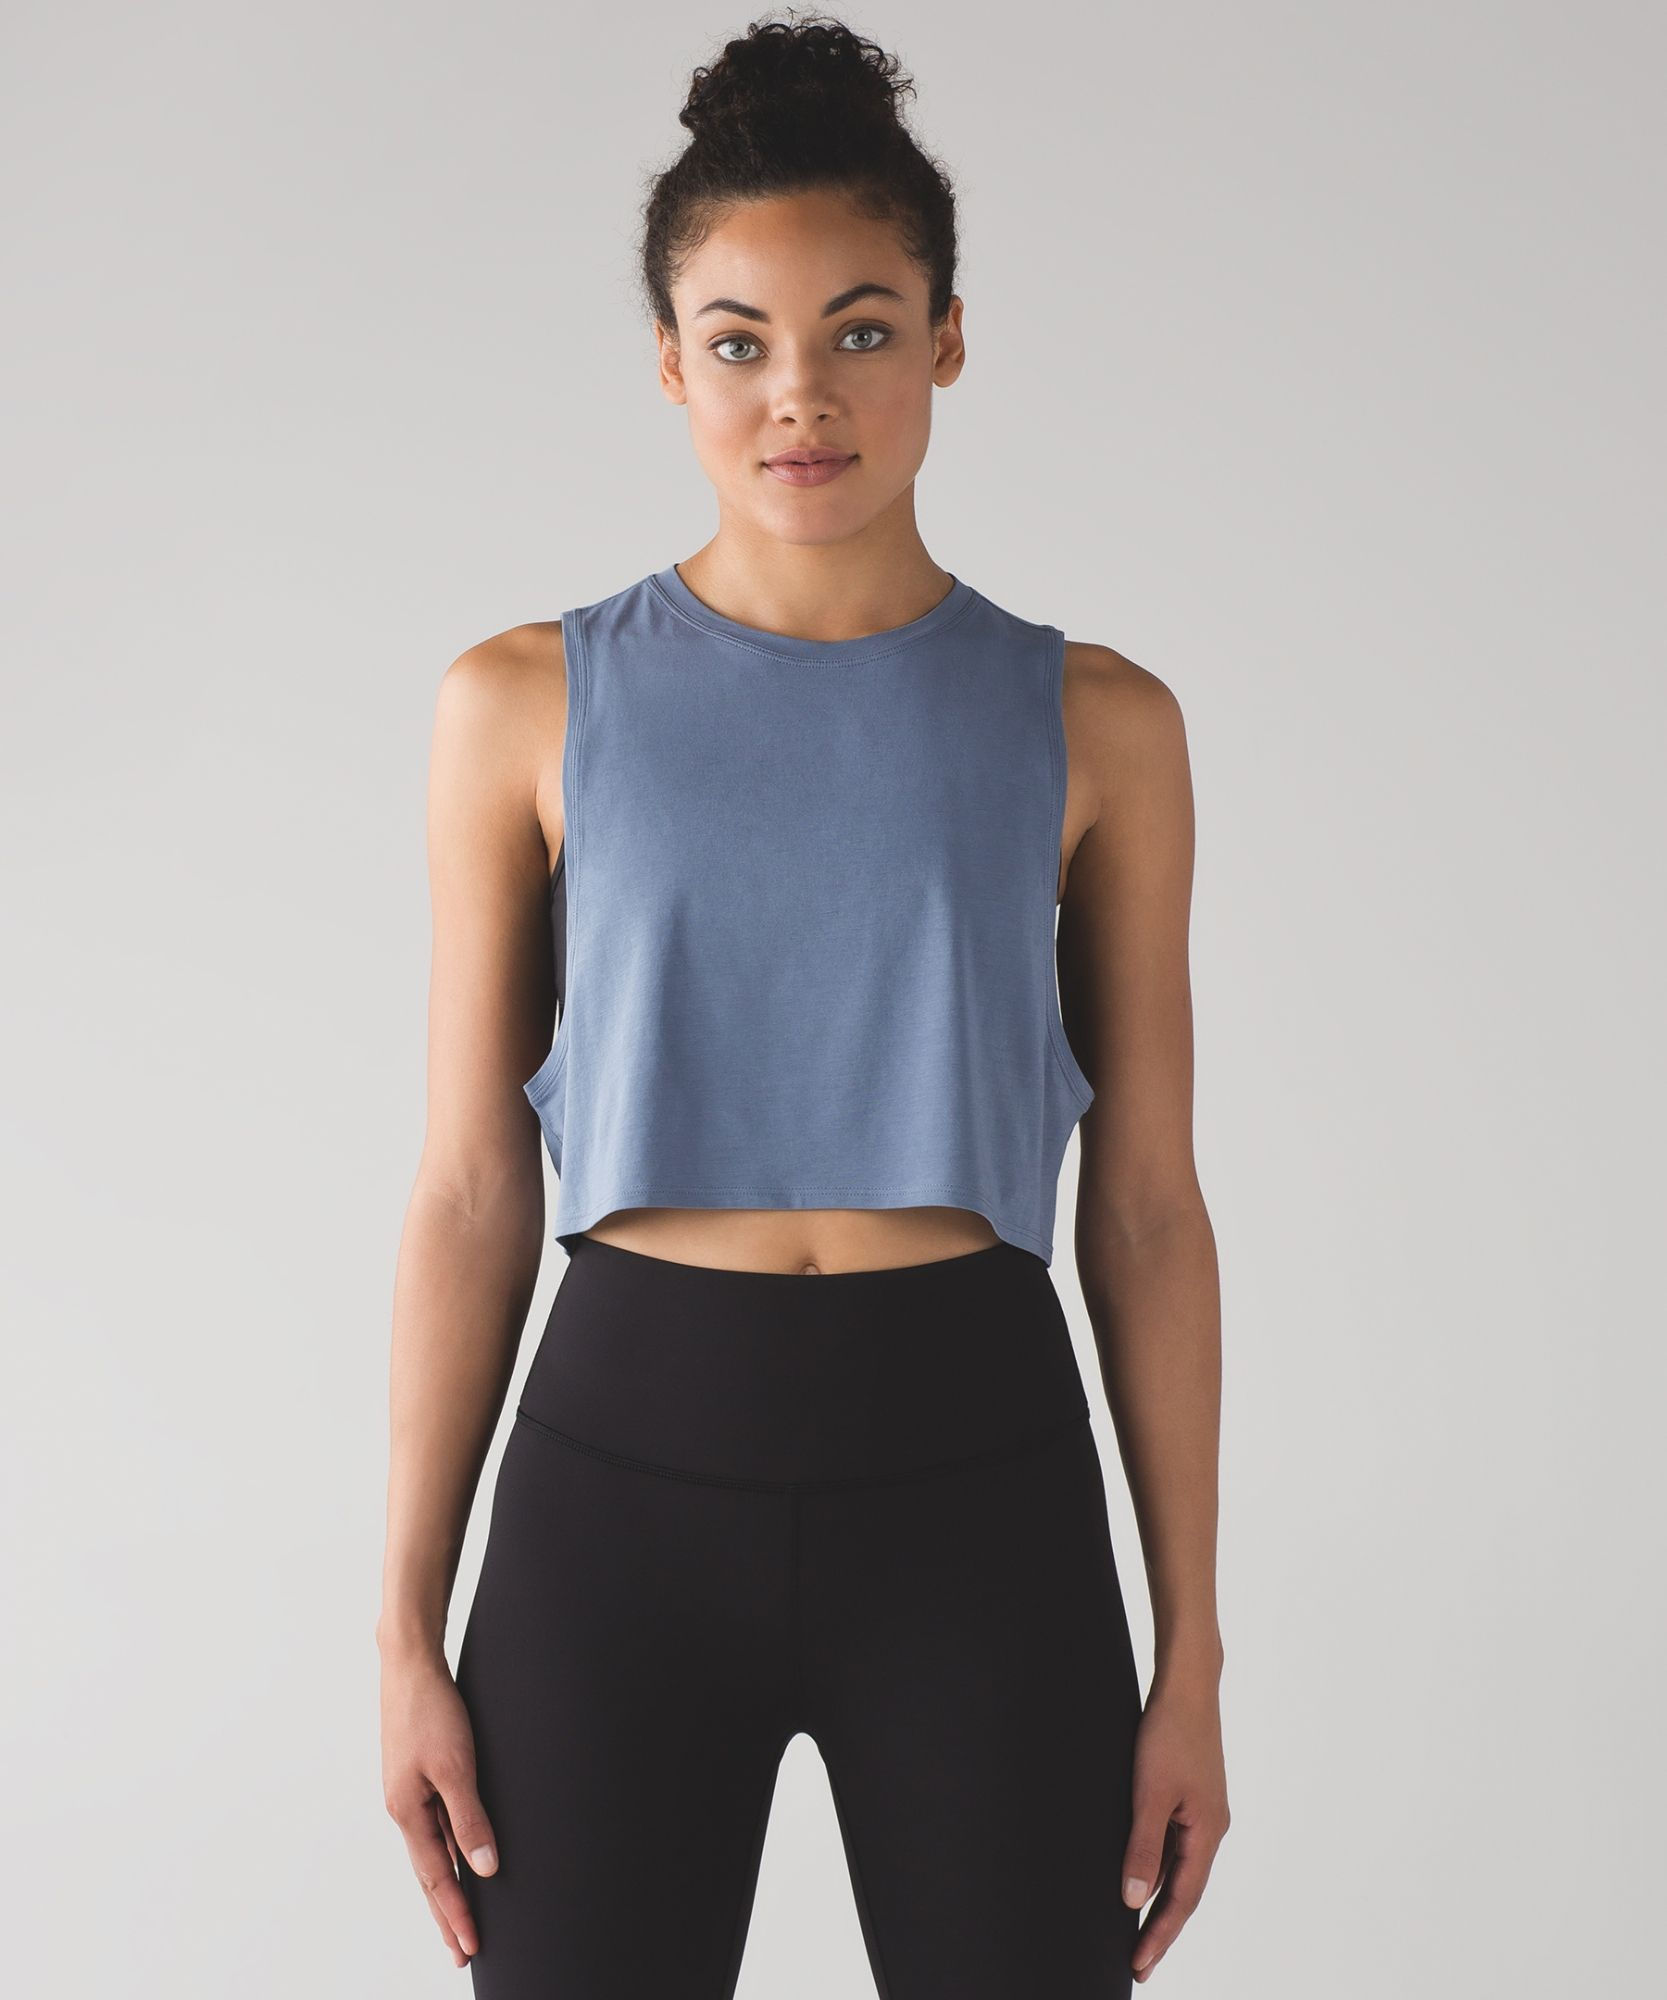 a4455d5e96245 We designed this cropped tank with low armholes to help keep you cool to  and through your practice.